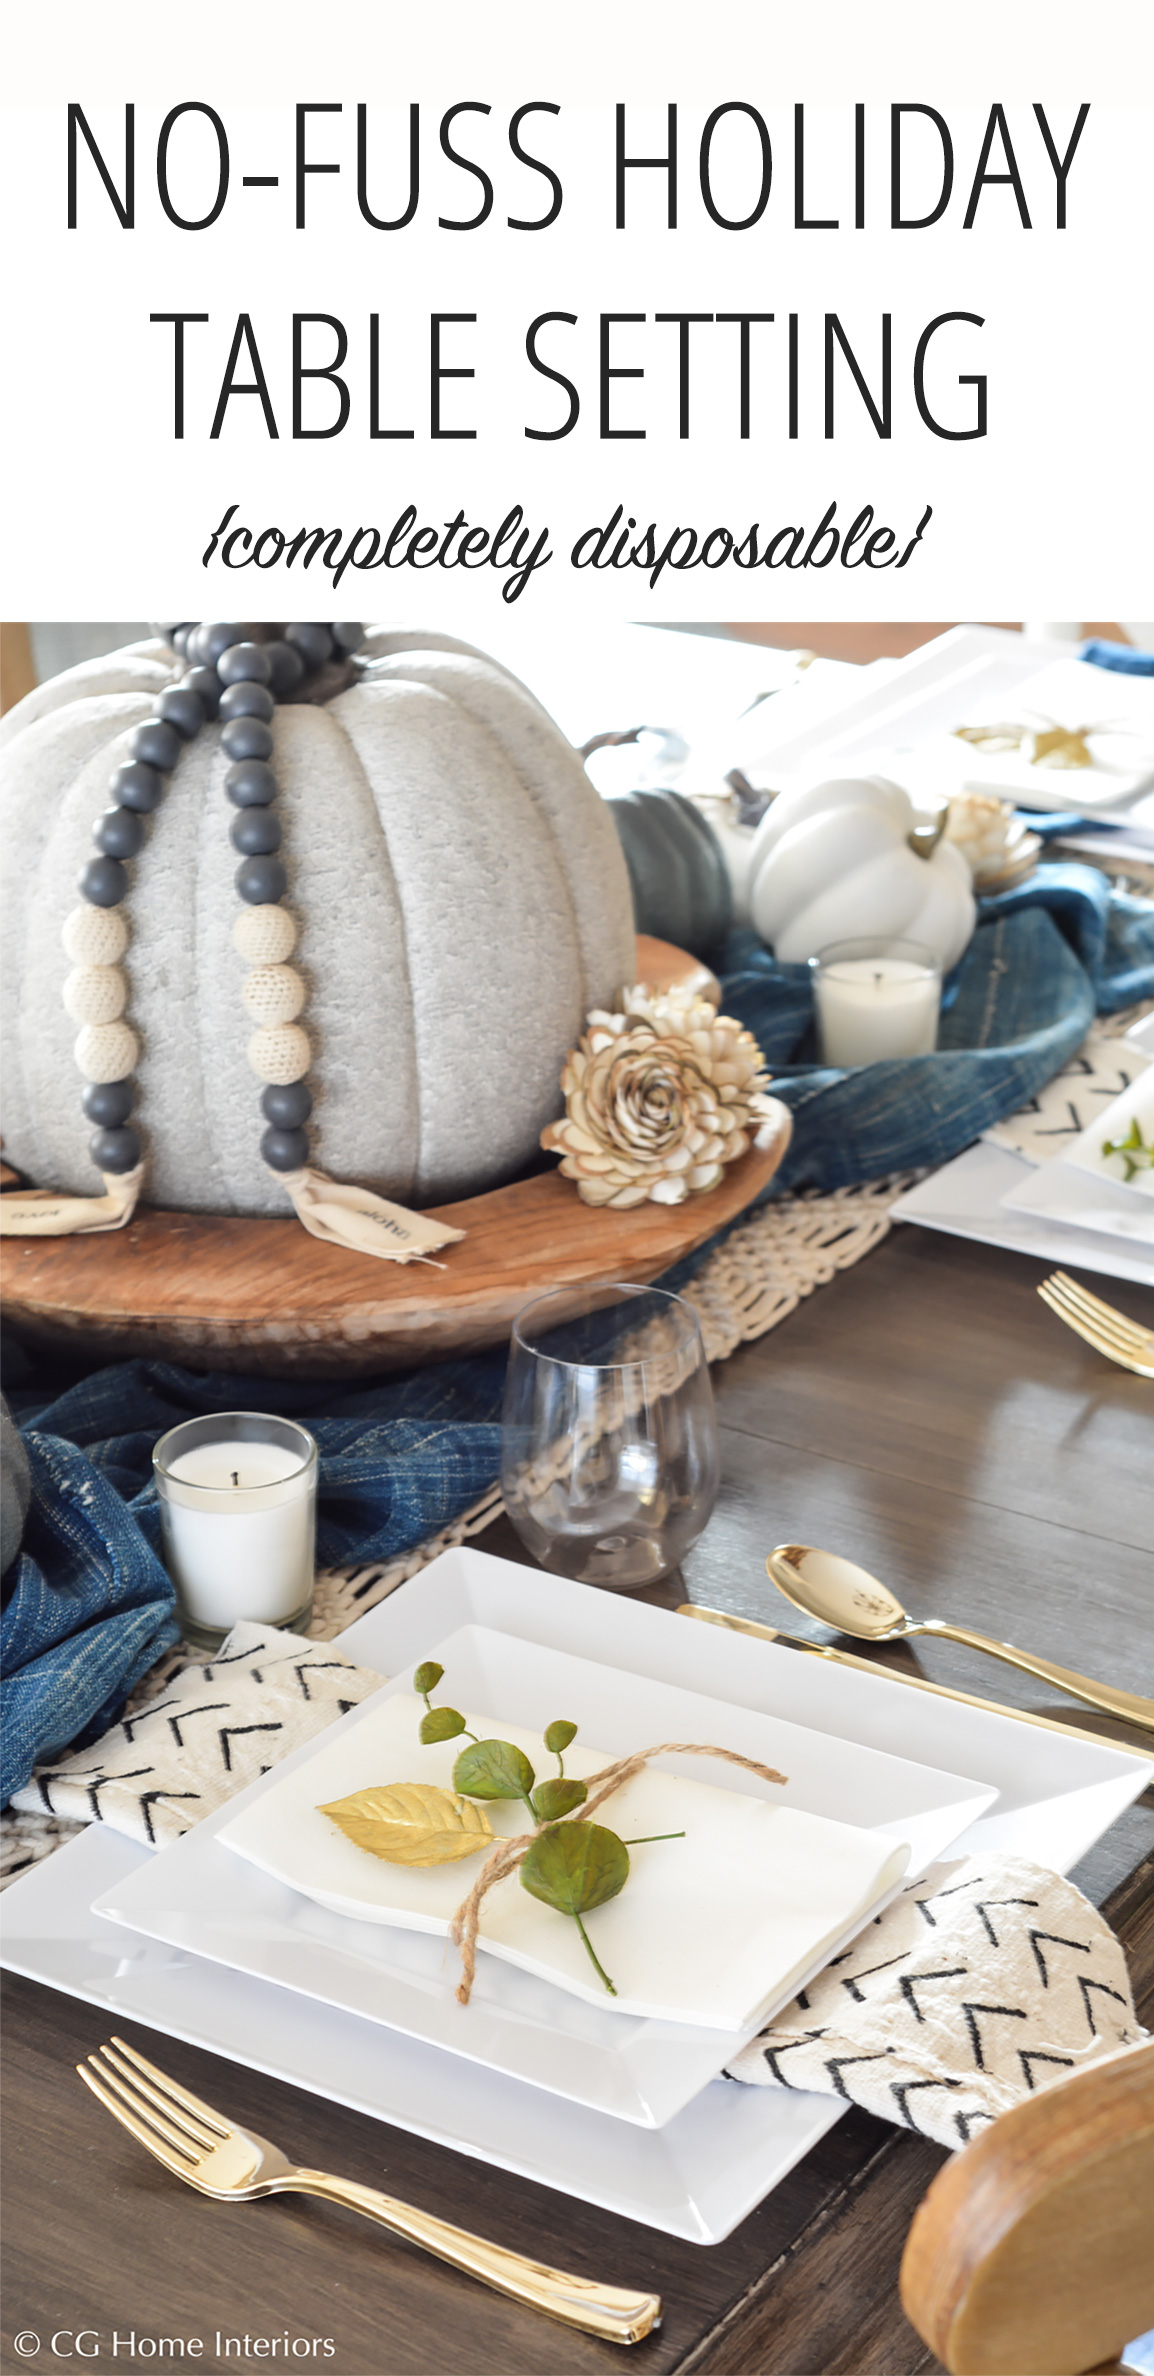 Disposable Holiday Table Setting for Pinterest